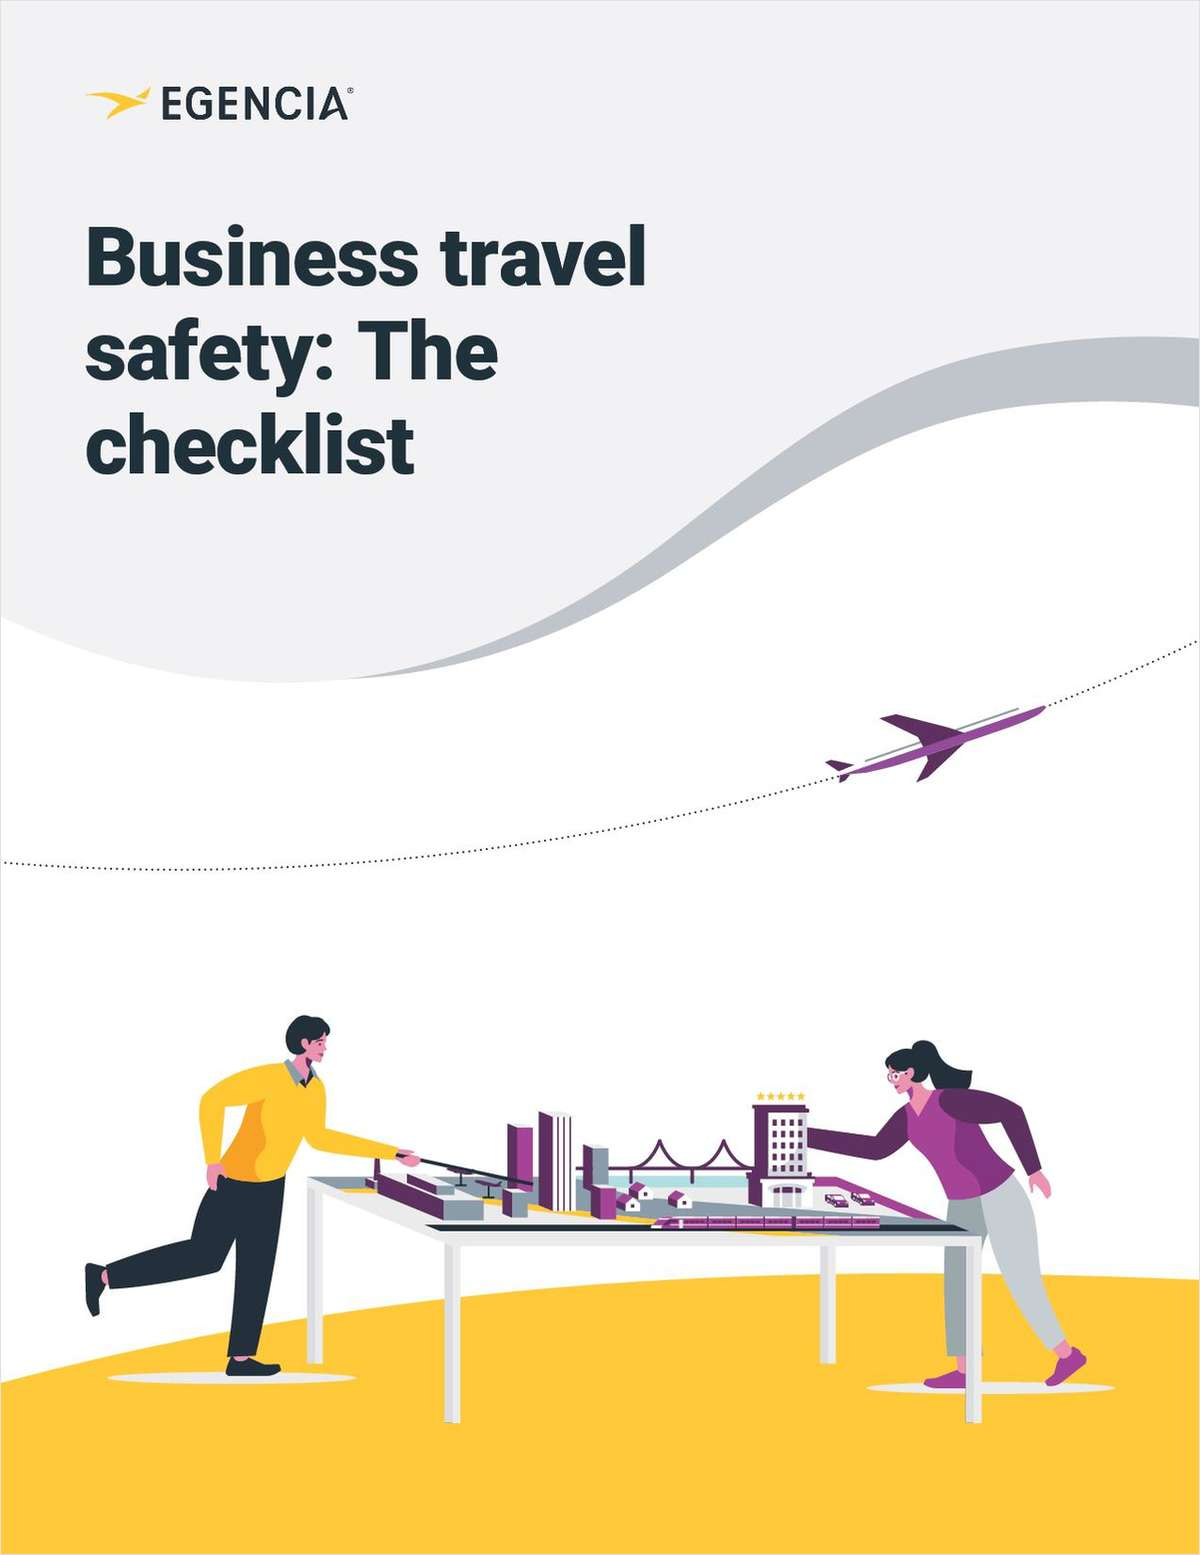 Business travel safety: The checklist